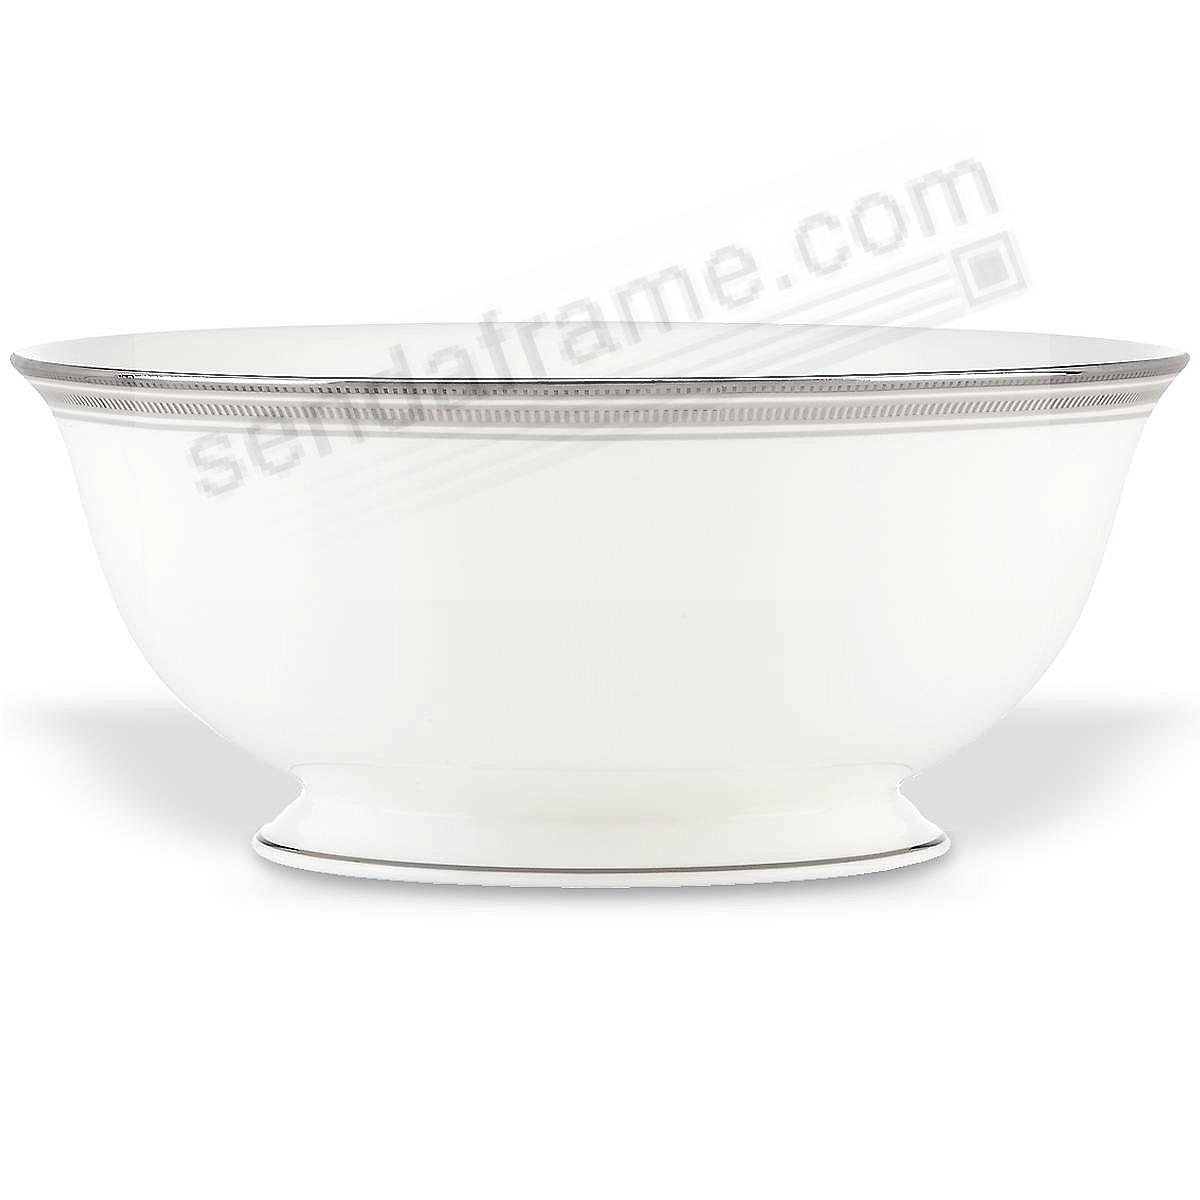 The PALMETTO BAY SERVING BOWL 8in kate spade new york®